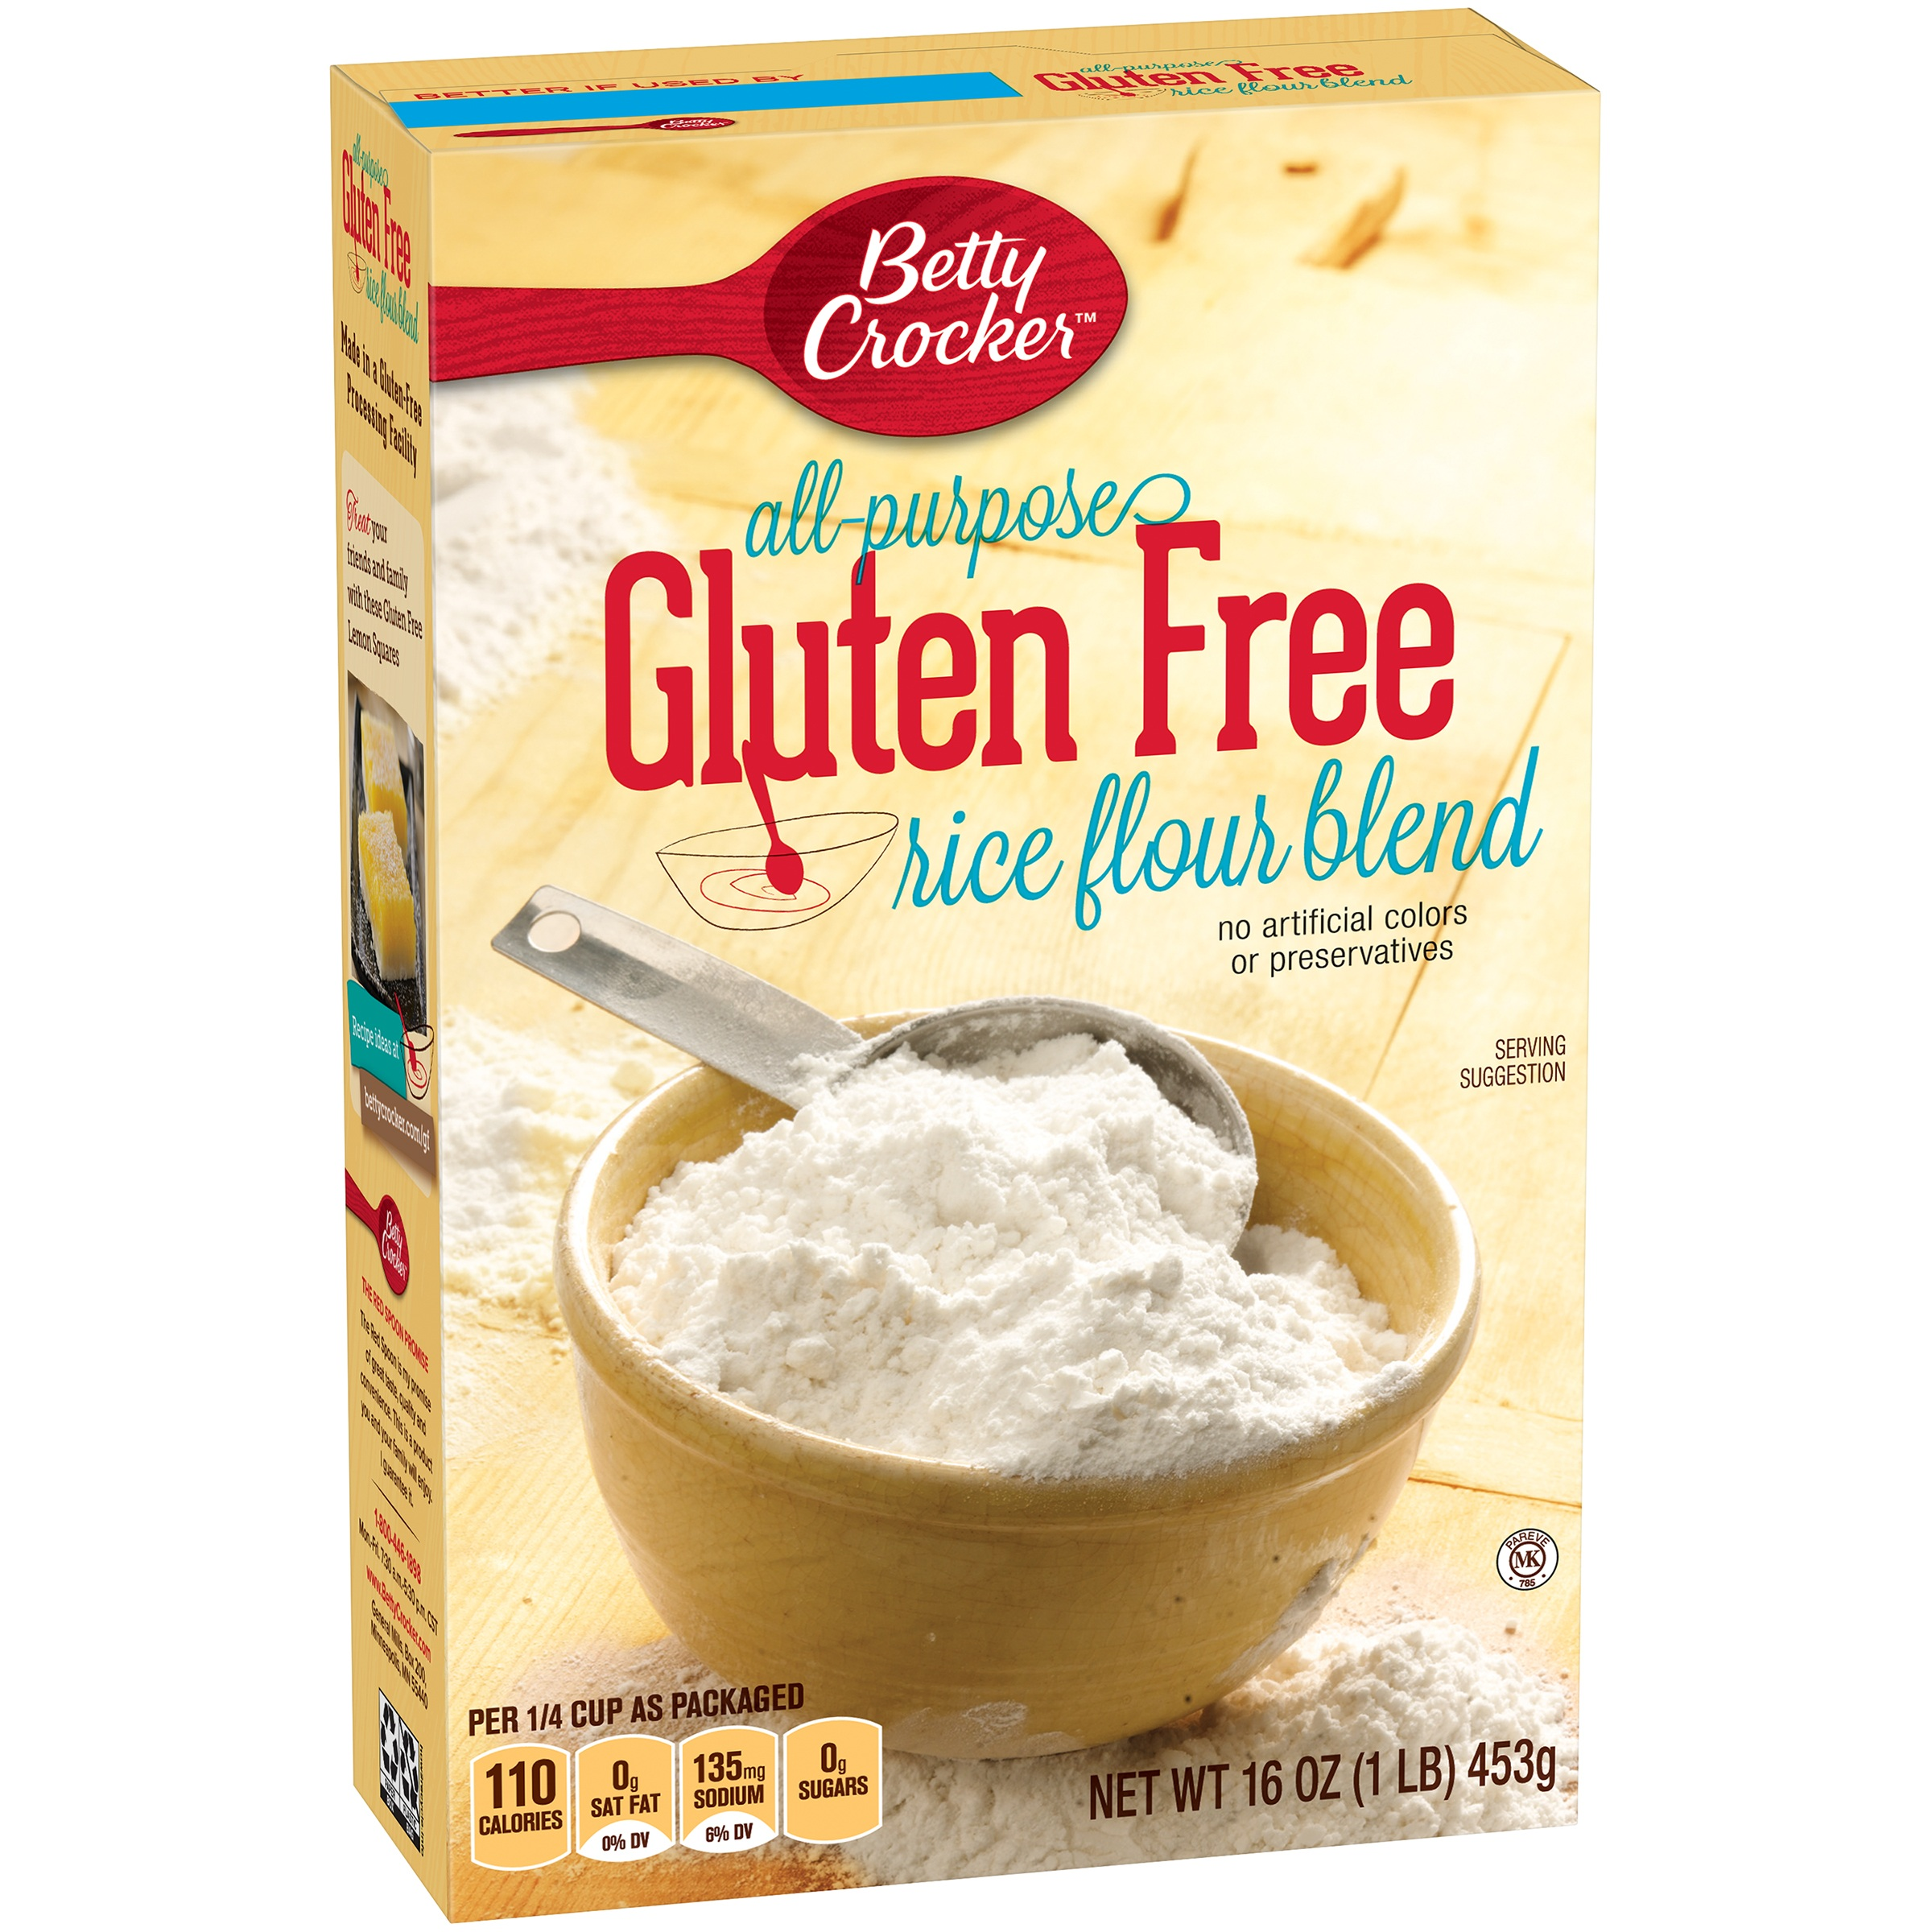 Betty Crocker Gluten Free Rice Flour Blend Flour 10 Lb